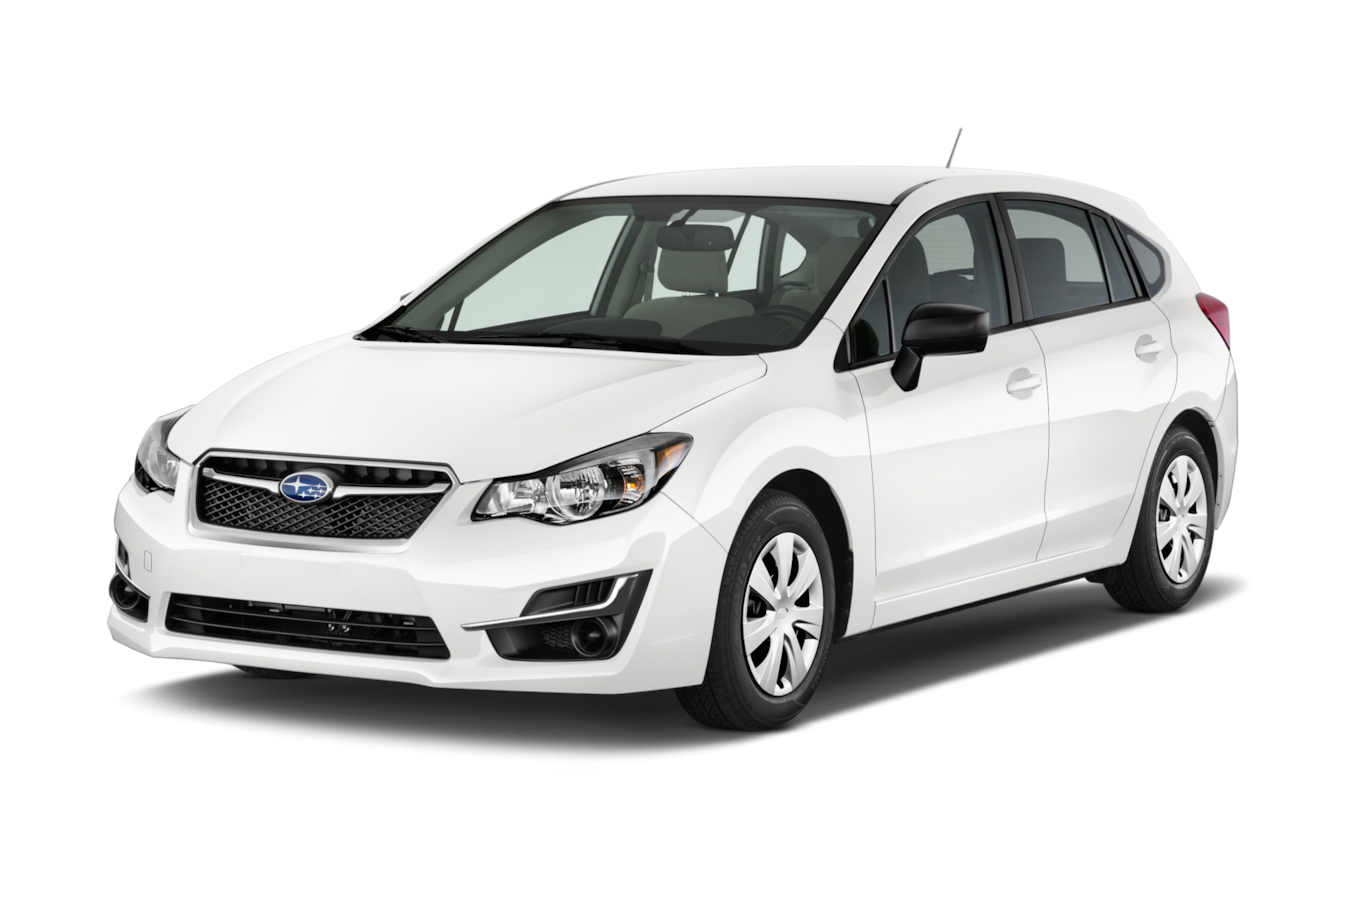 2017 subaru impreza 2.0 i manual hatchback